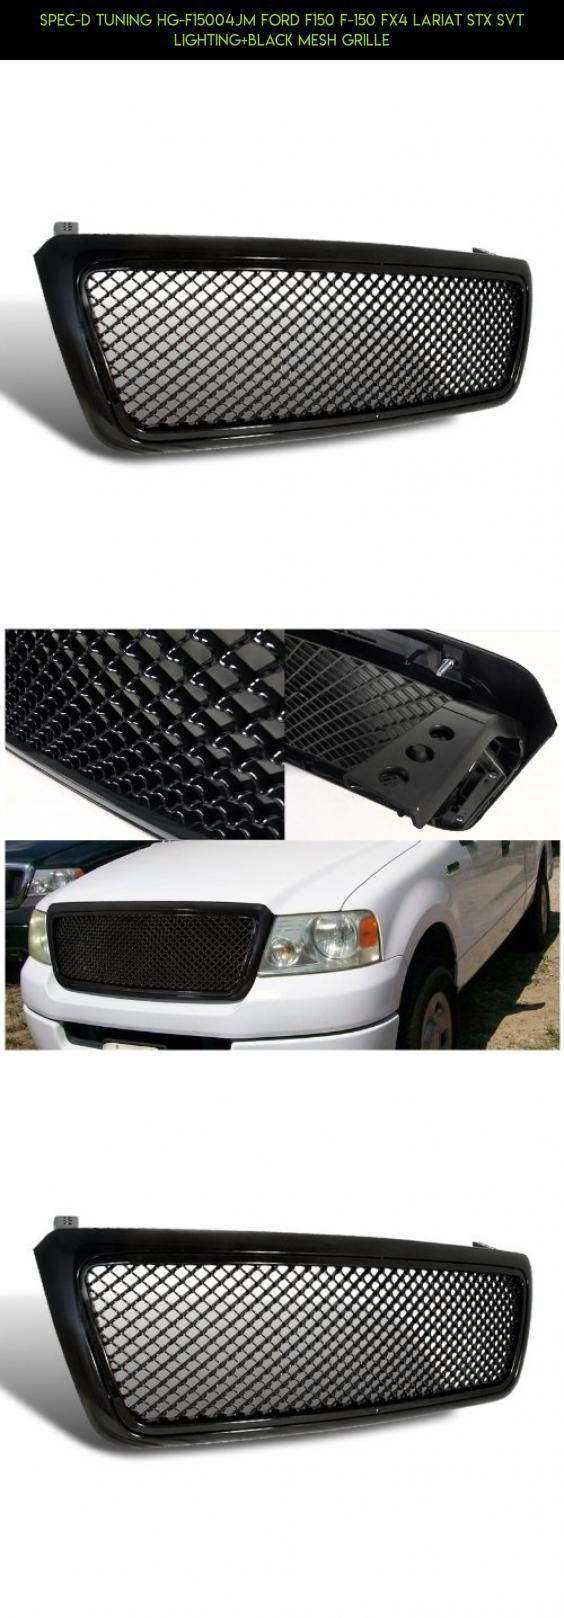 Spec-D Tuning HG-F15004JM Ford F150 F-150 Fx4 Lariat Stx Svt Lighting+Black Mesh Grille #products #technology #kit #grills #parts #ford #fpv #camera #racing #gadgets #tech #2006 #drone #shopping #plans #f150